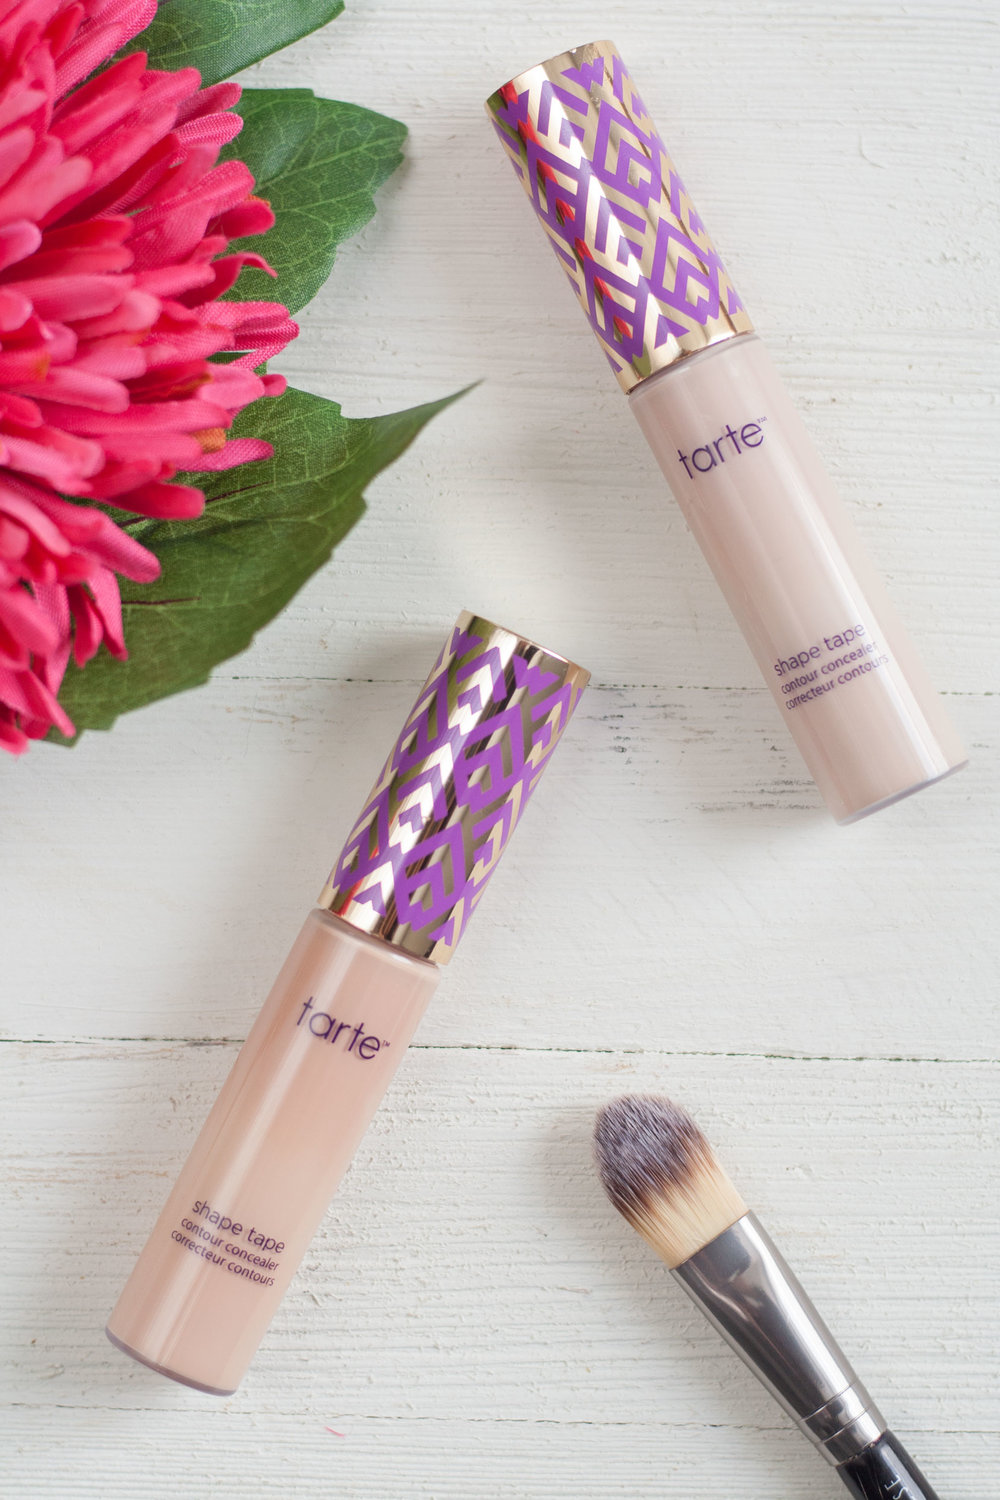 bit-and-bauble-tarte-shape-tape-concealer-fair-light-neutral-review-5.jpg